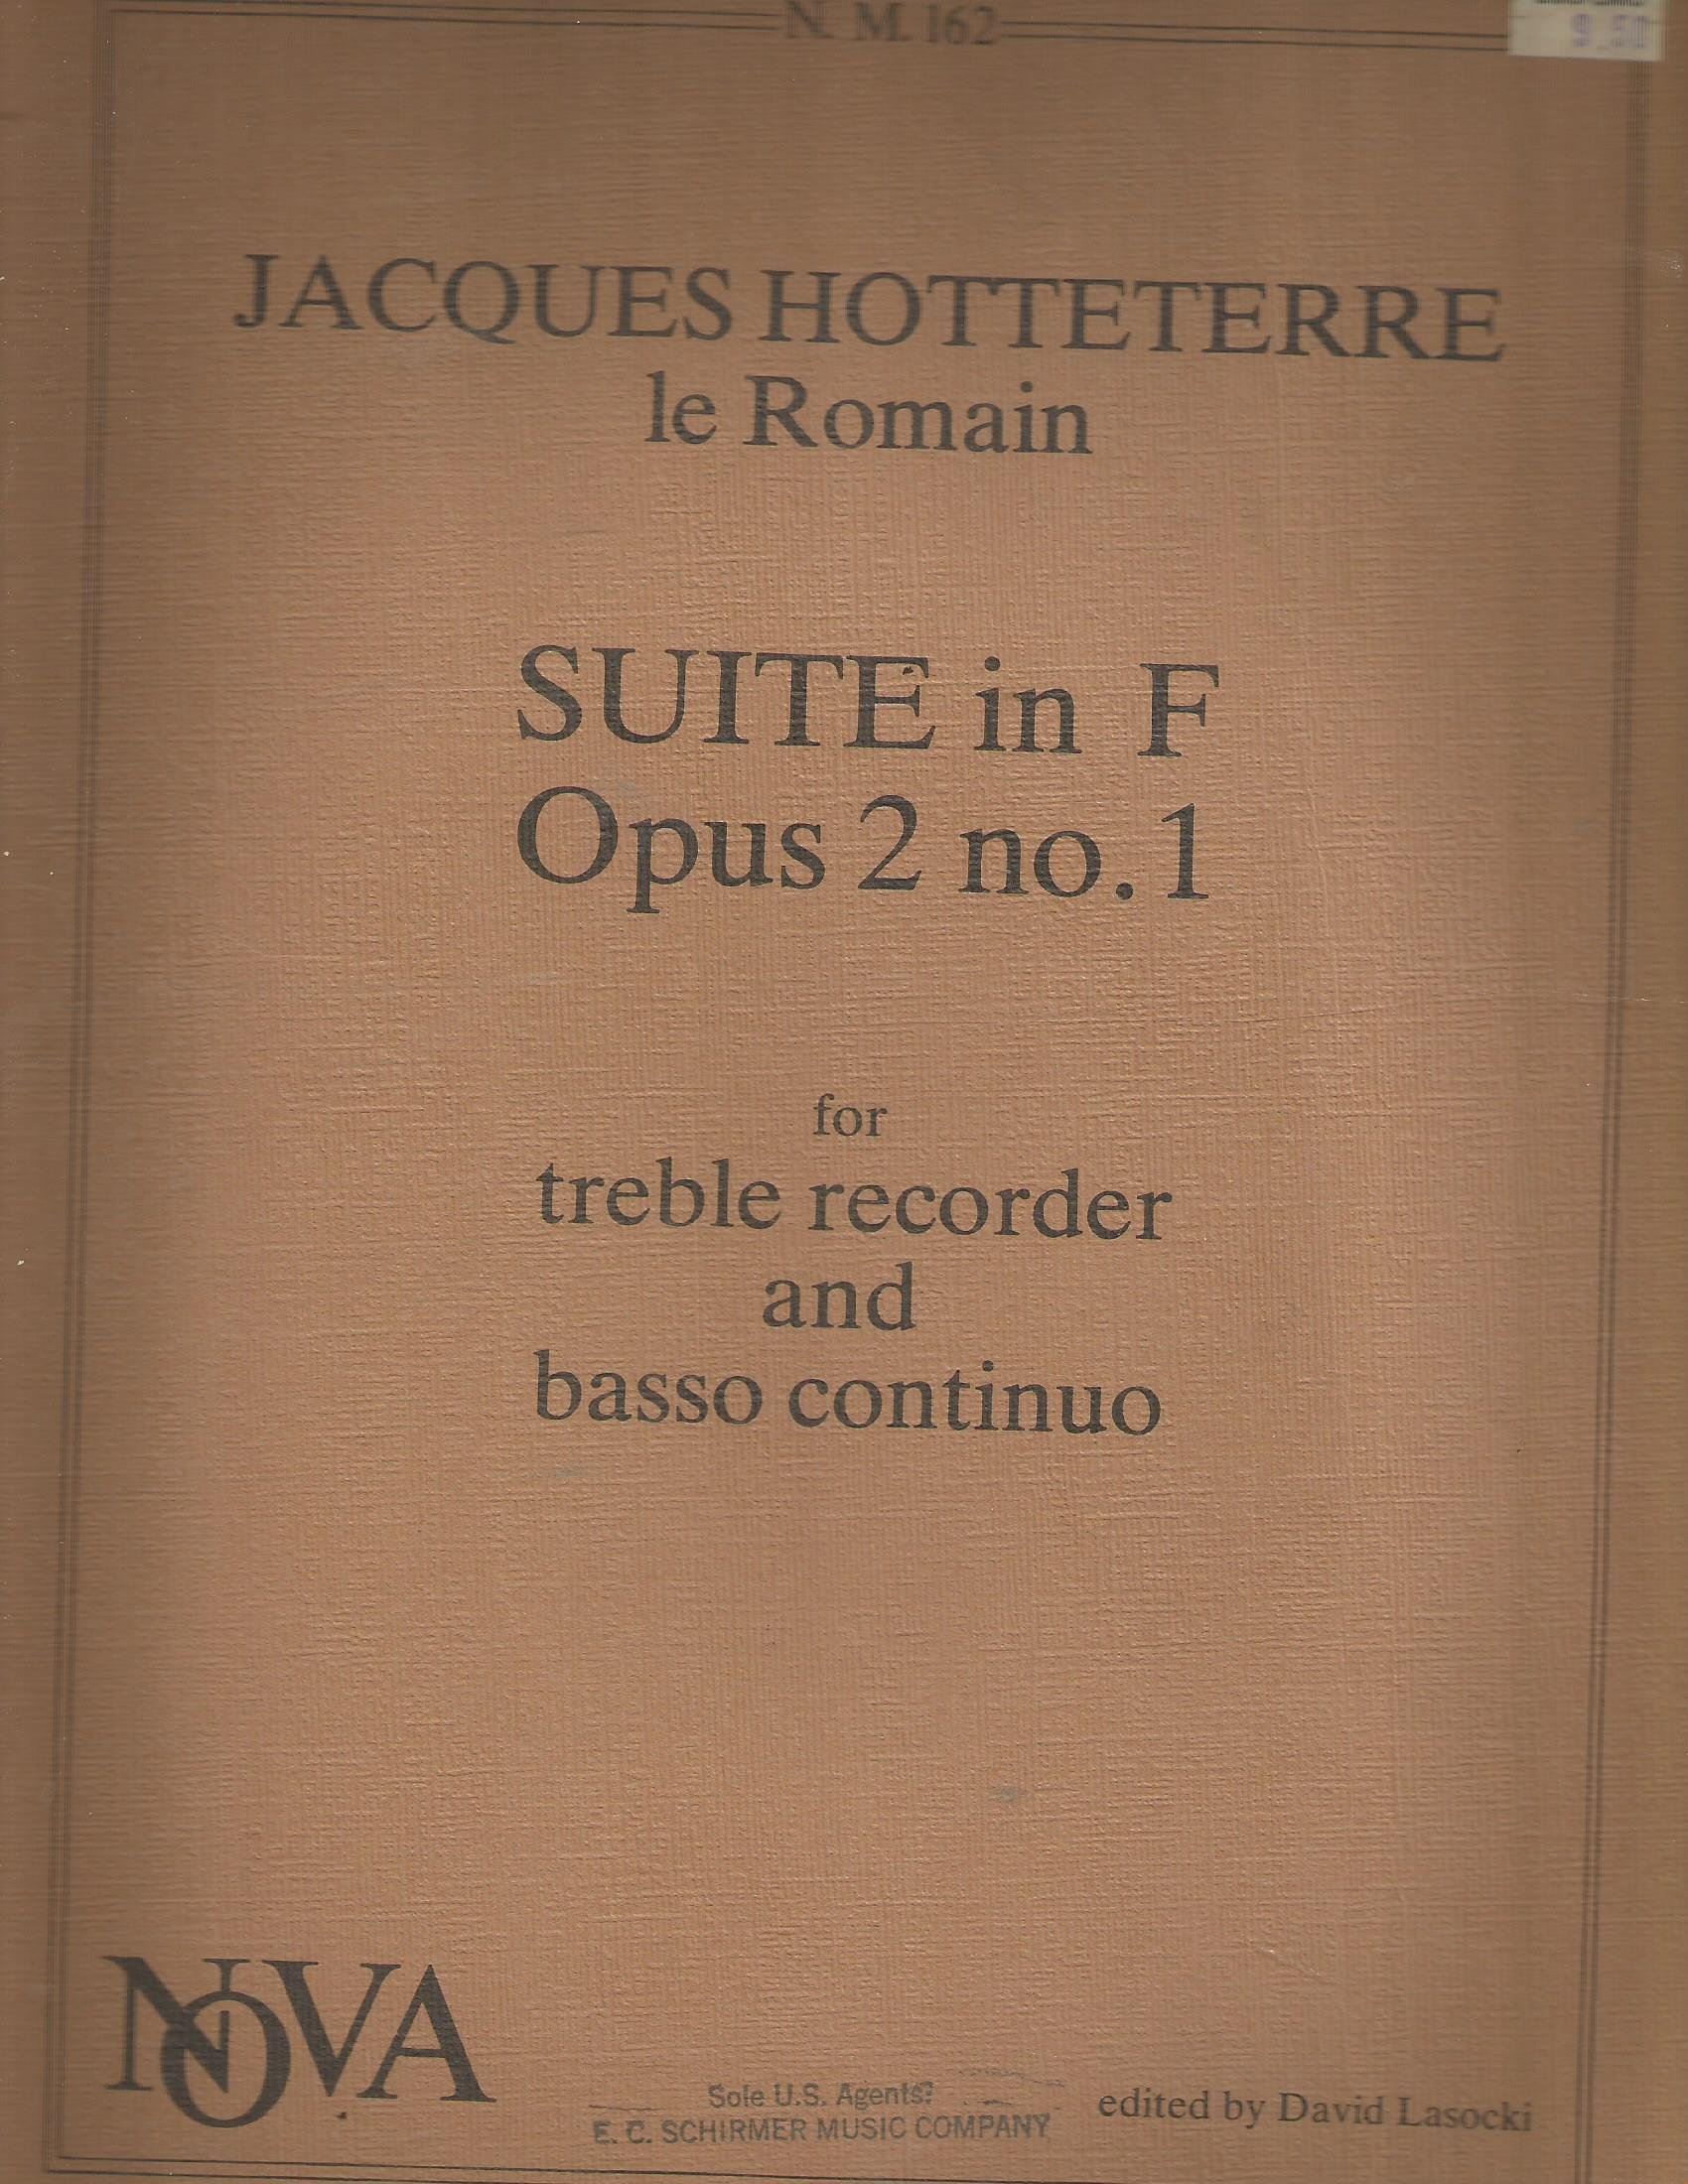 Hotteterre le Romain Suite in F Op.3 No.1 for Treble Recorder & Basso Continuo